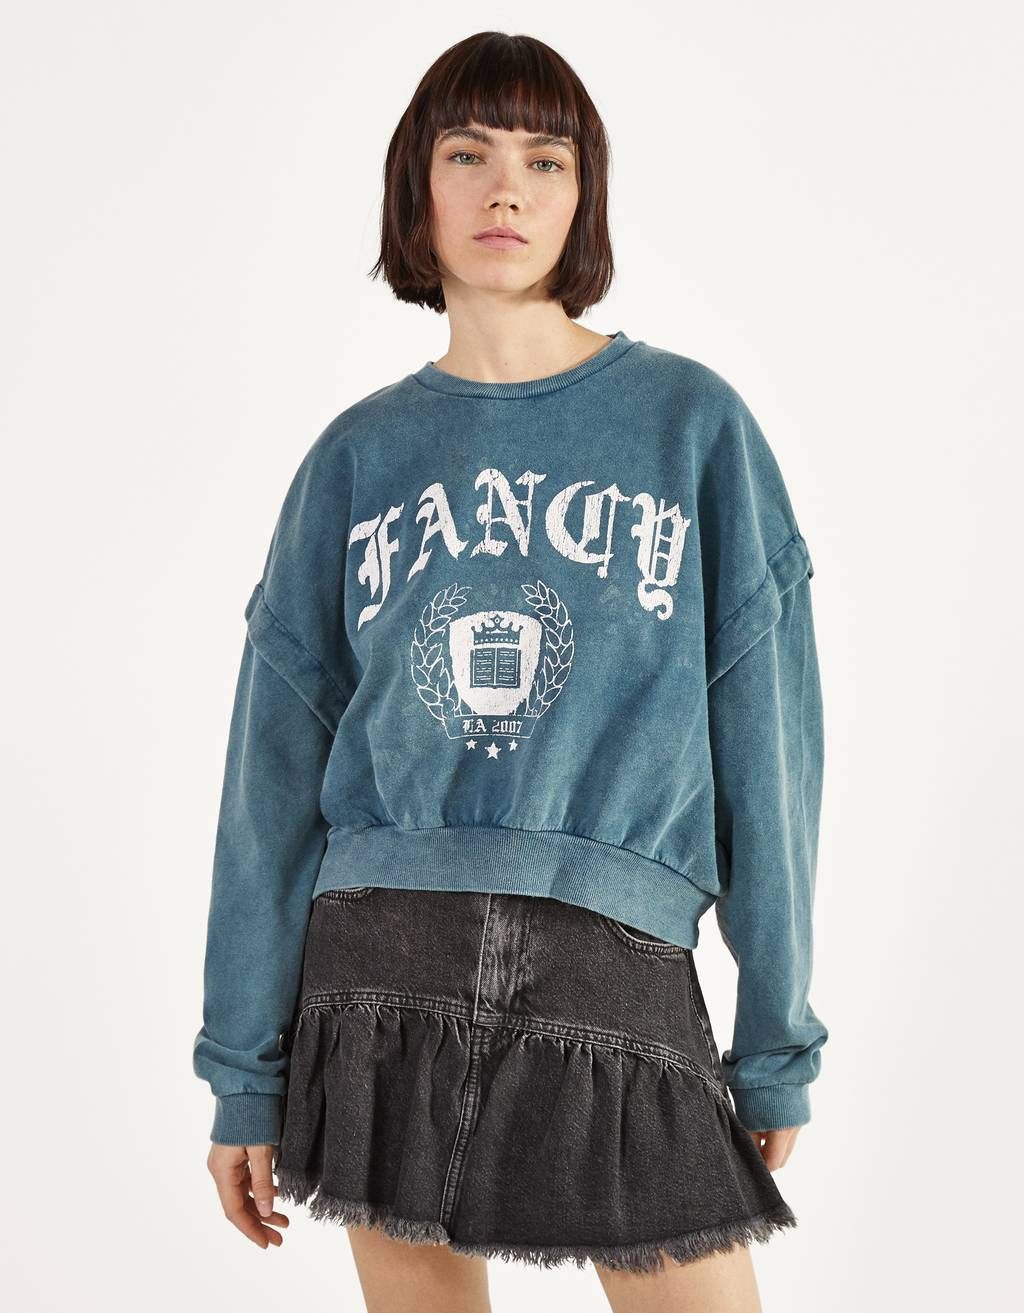 Printed acid wash sweatshirt